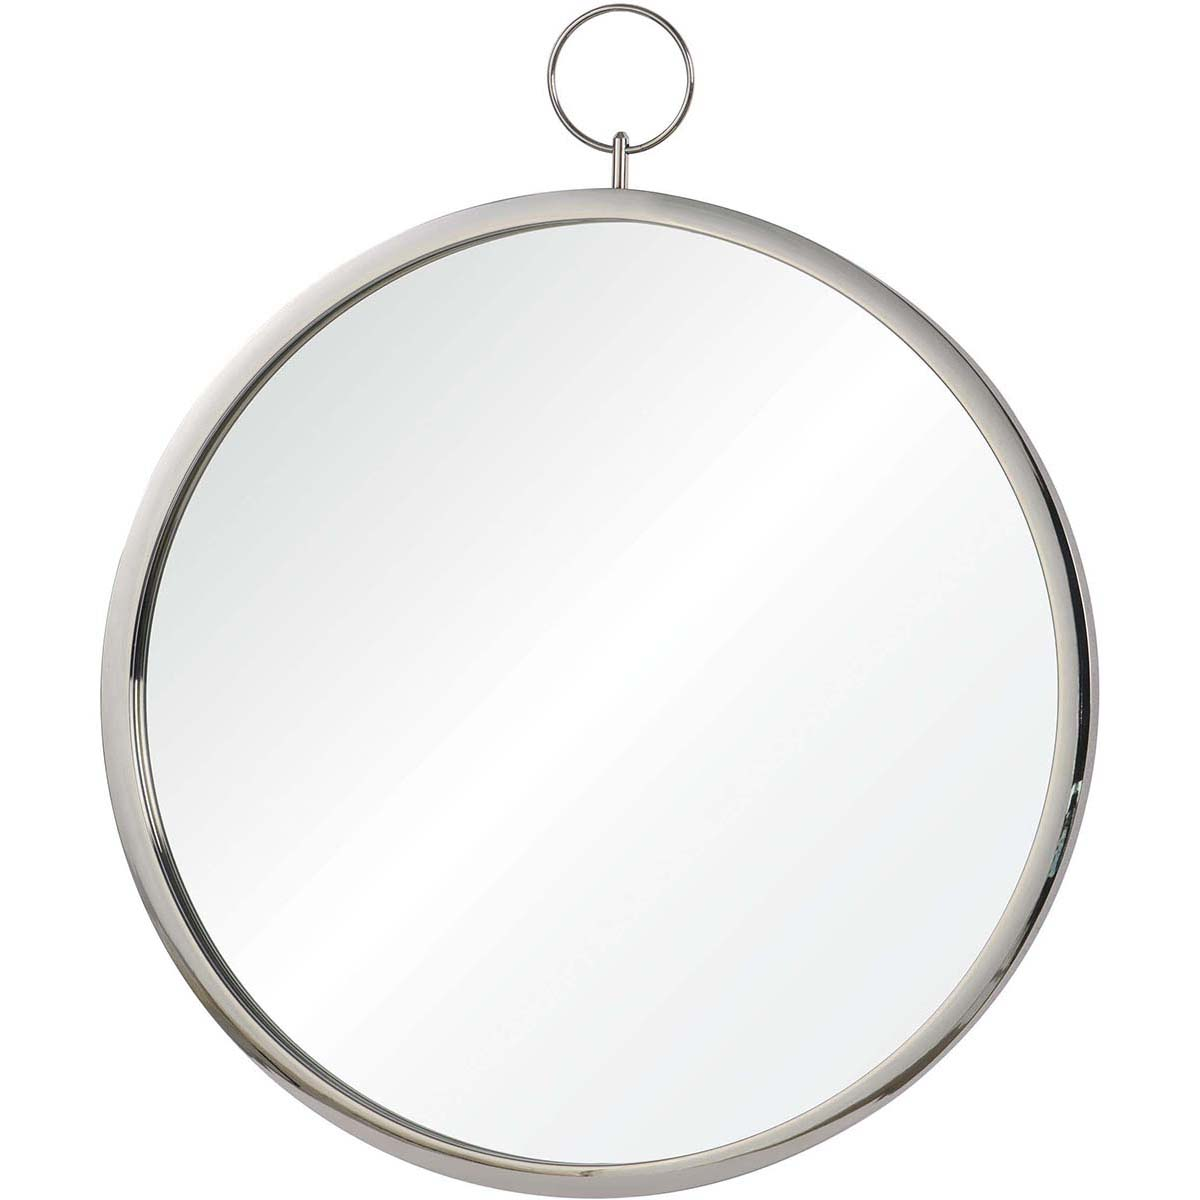 Check out the Porto Mirror Product Photo